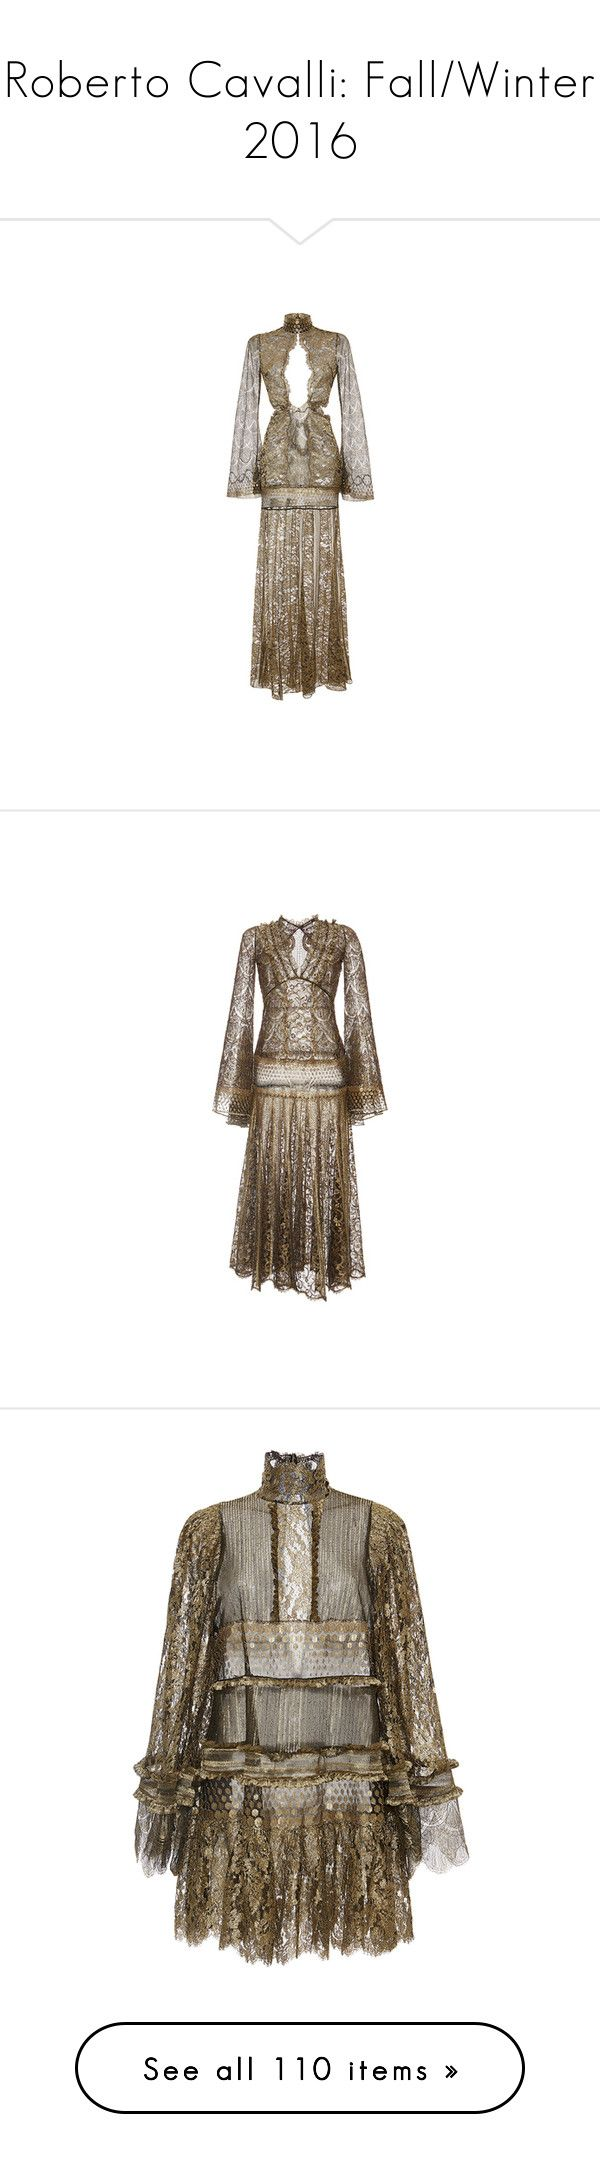 """""""Roberto Cavalli: Fall/Winter 2016"""" by livnd ❤ liked on Polyvore featuring collection, robertocavalli, fallwinter2016, dresses, brown dress, a line cocktail dress, long lace dress, brown cocktail dress, long dresses and metallic lace dress"""